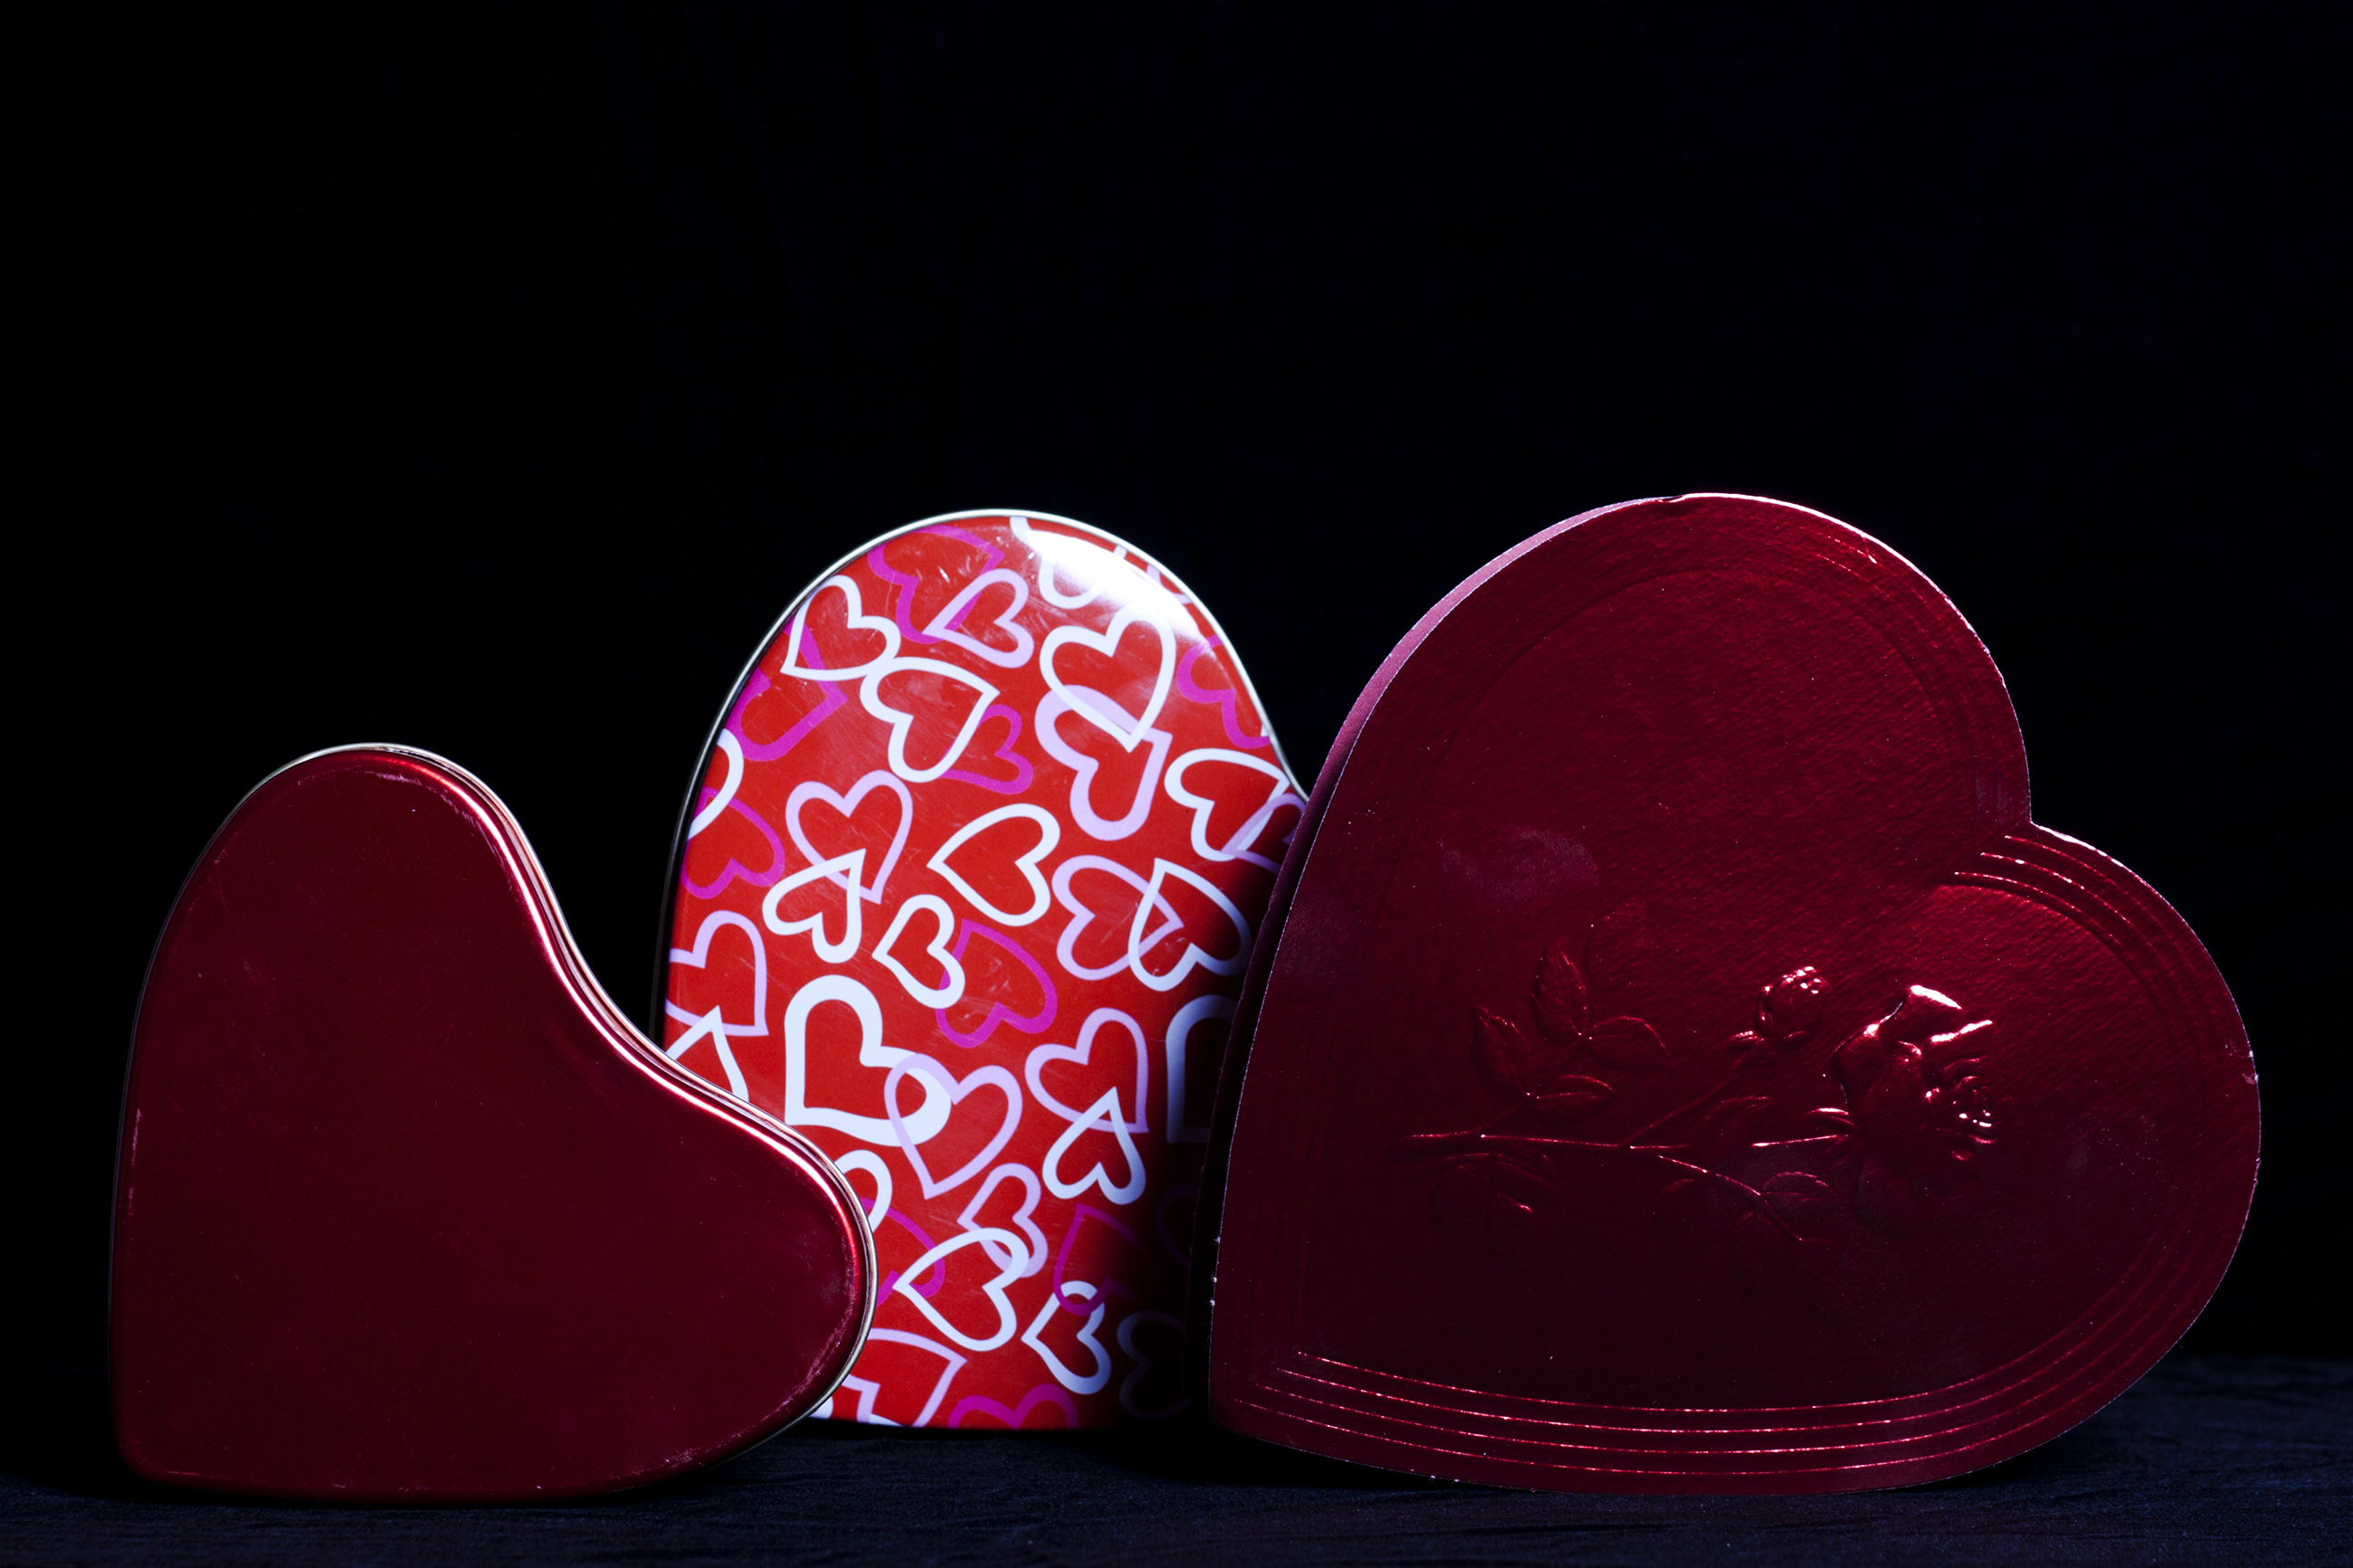 Heart Shaped Gift Boxes on Black, Affection, Ribbon, Objects, Package, HQ Photo